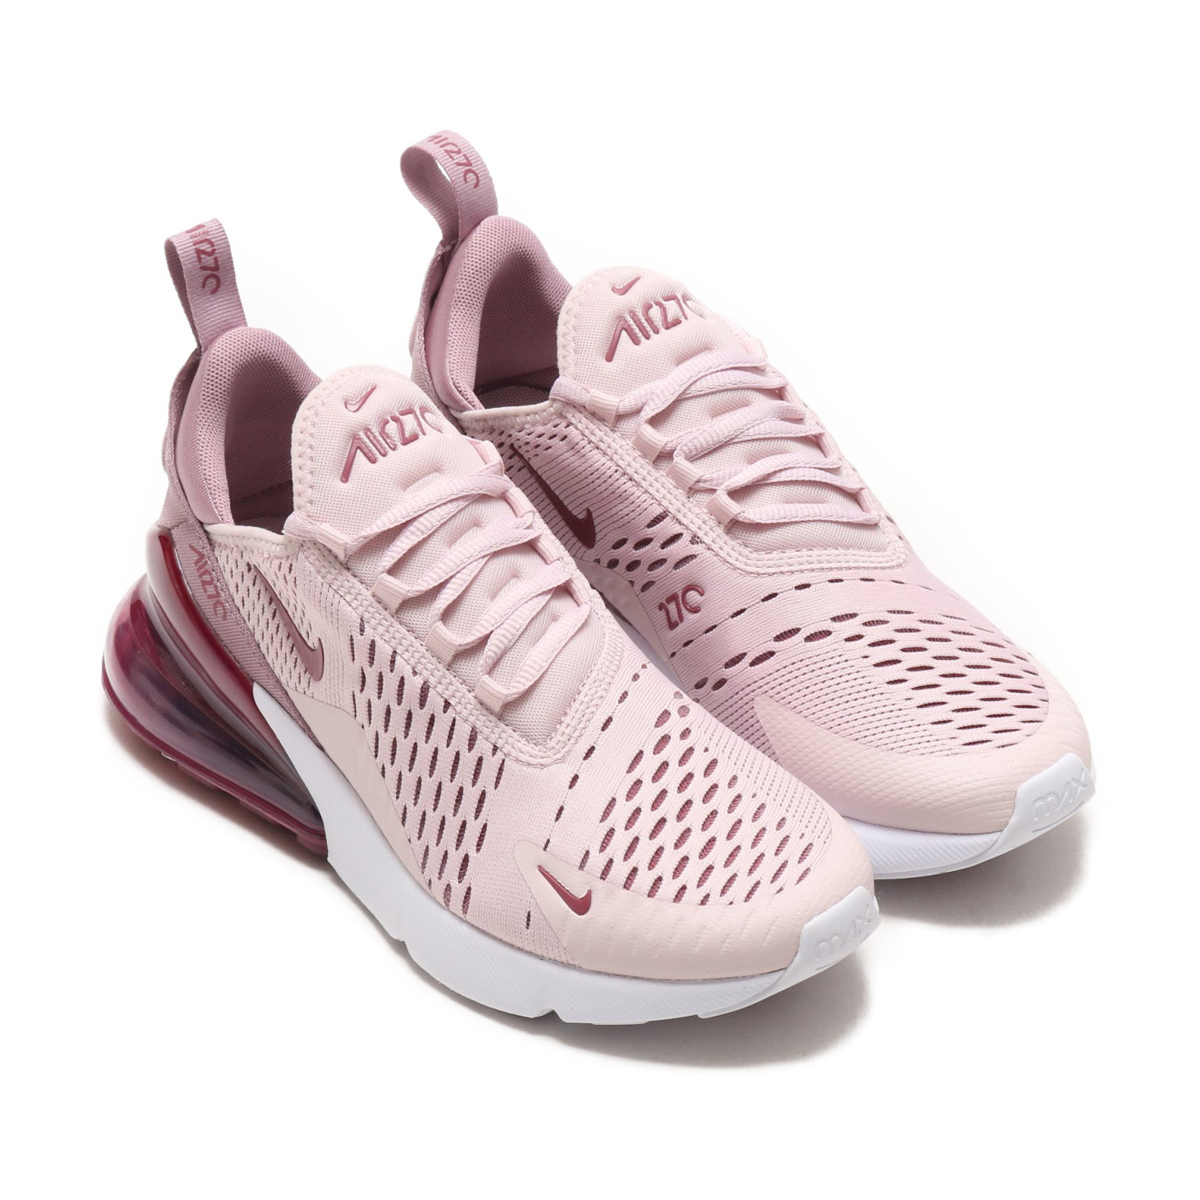 NIKE W AIR MAX 270 (Nike women Air Max 270) (BARELY ROSE VINTAGE  WINE-ELEMENTAL ROSE) 18SU-S 0e1517ed135e